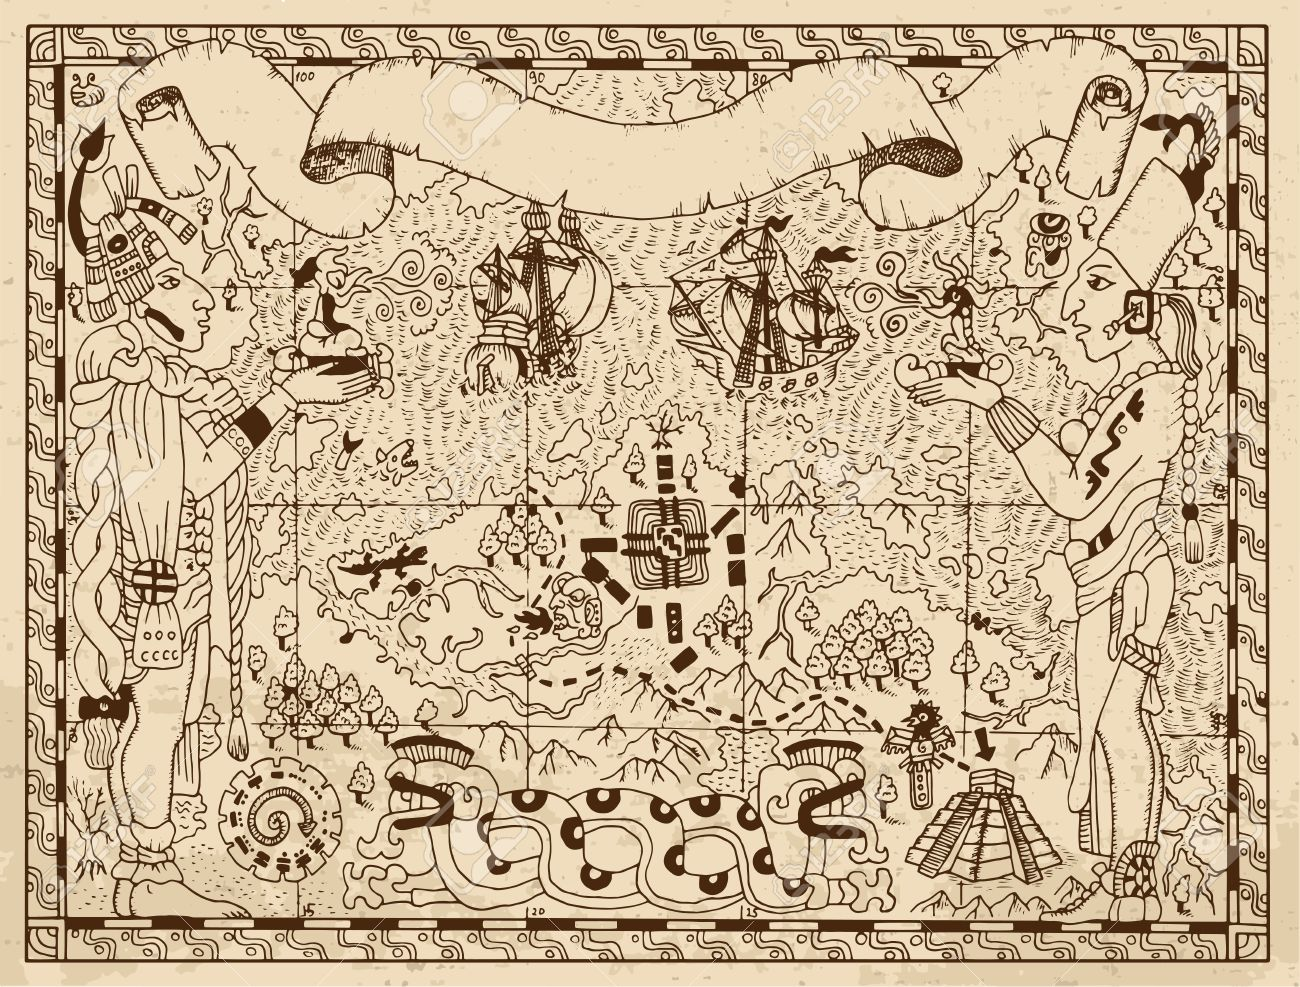 1300x987 Old Mayan, Aztec Or Pirate Map With Two Gods, Ships And Fantasy